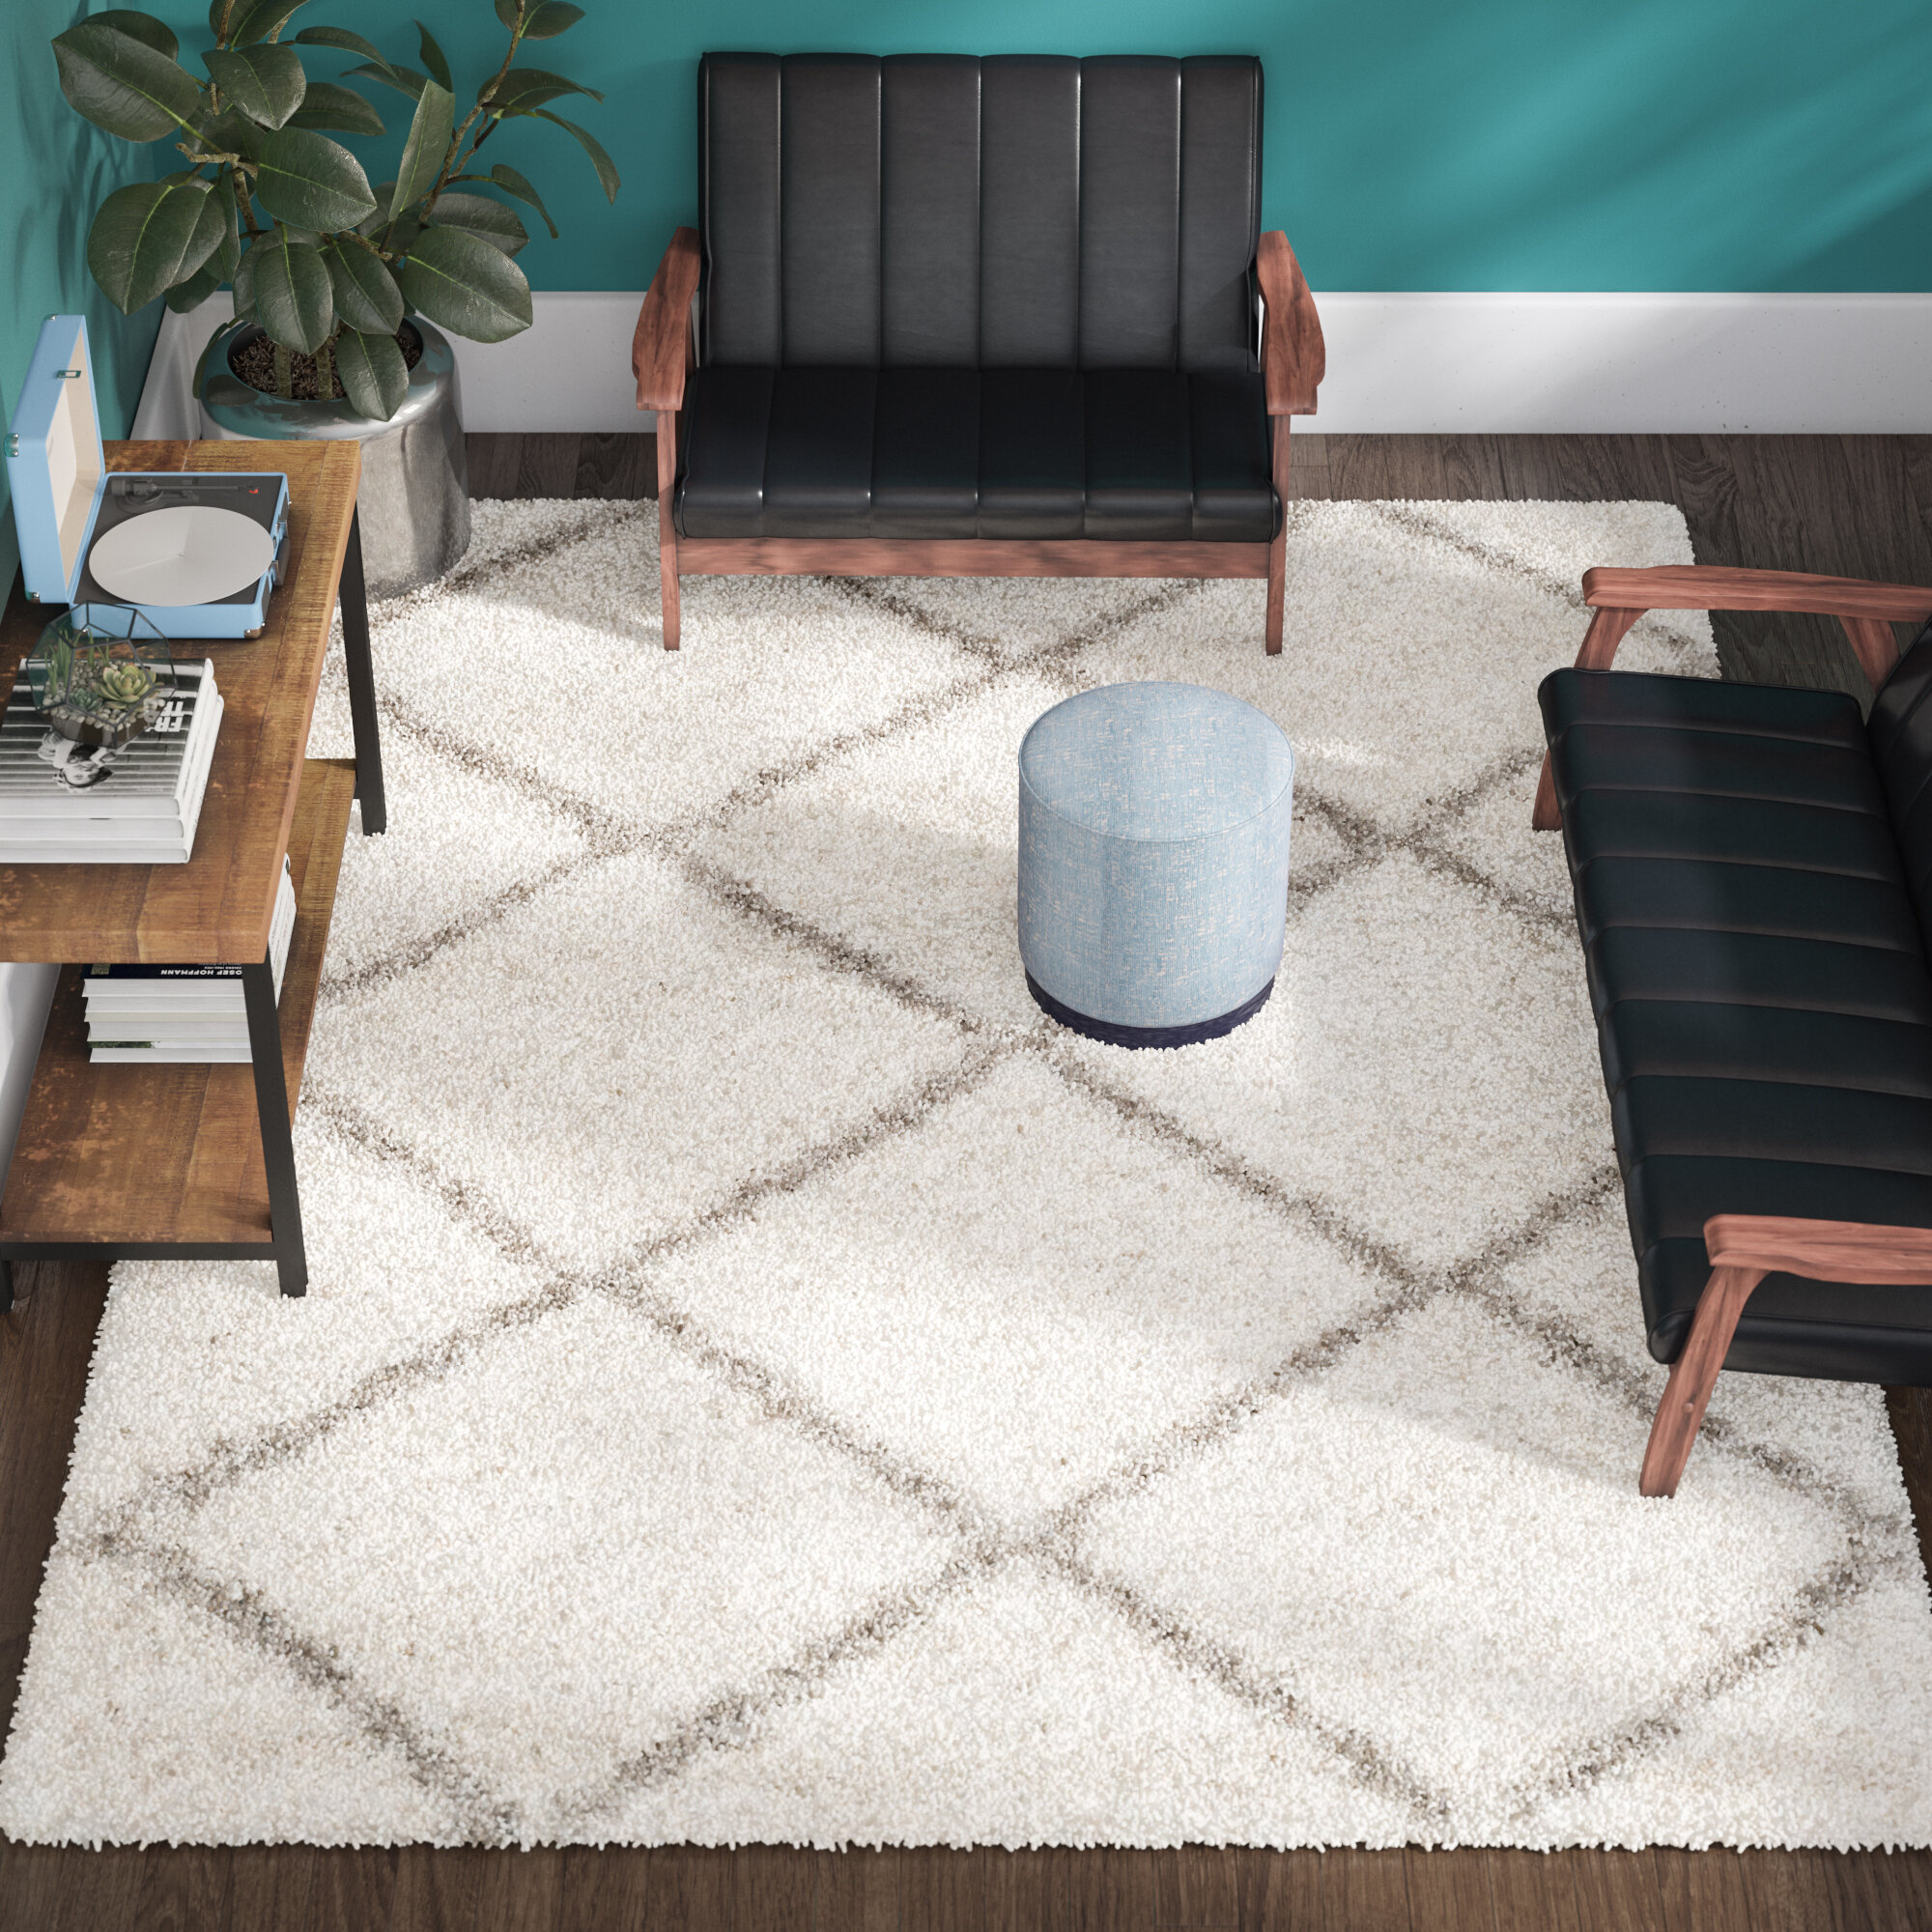 heavenly flokati nicole gray area this collection carpet designer itm special s solid the as shag rugs miller by ivory are comfortable nmhvs nm of clothing and rug line